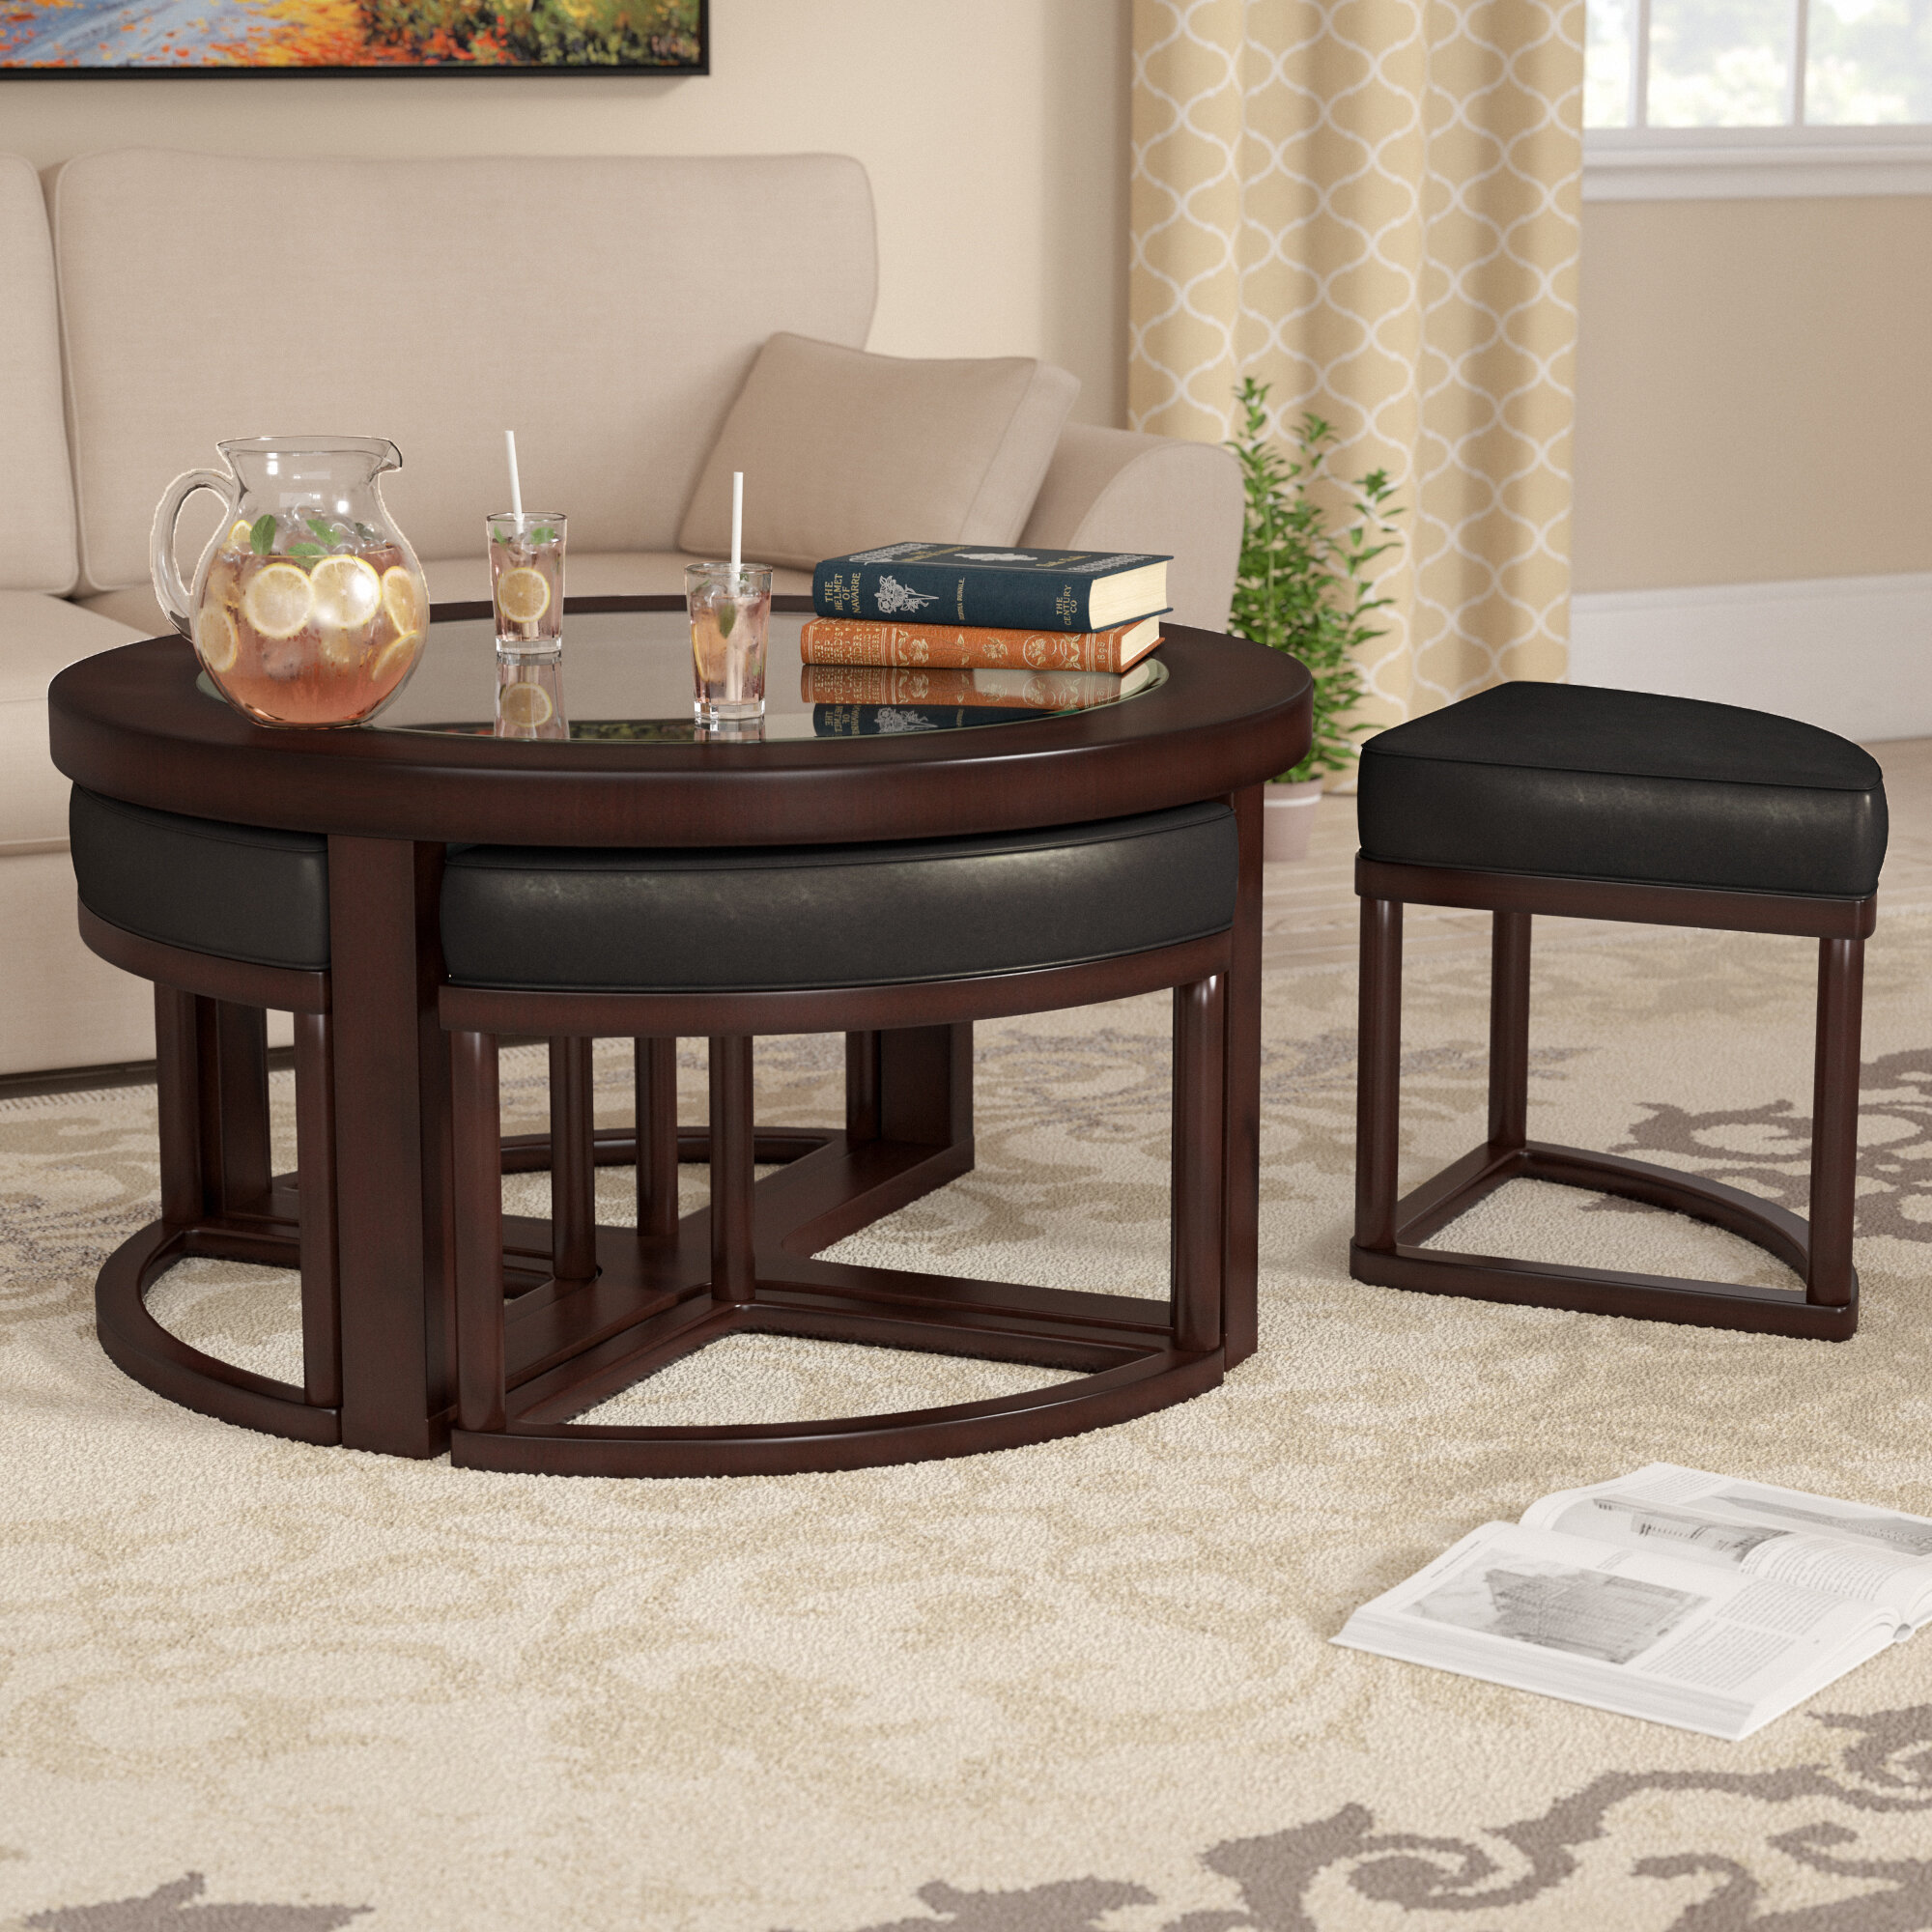 products stools interiors with home tonga coffeetable coffee table cornerstone